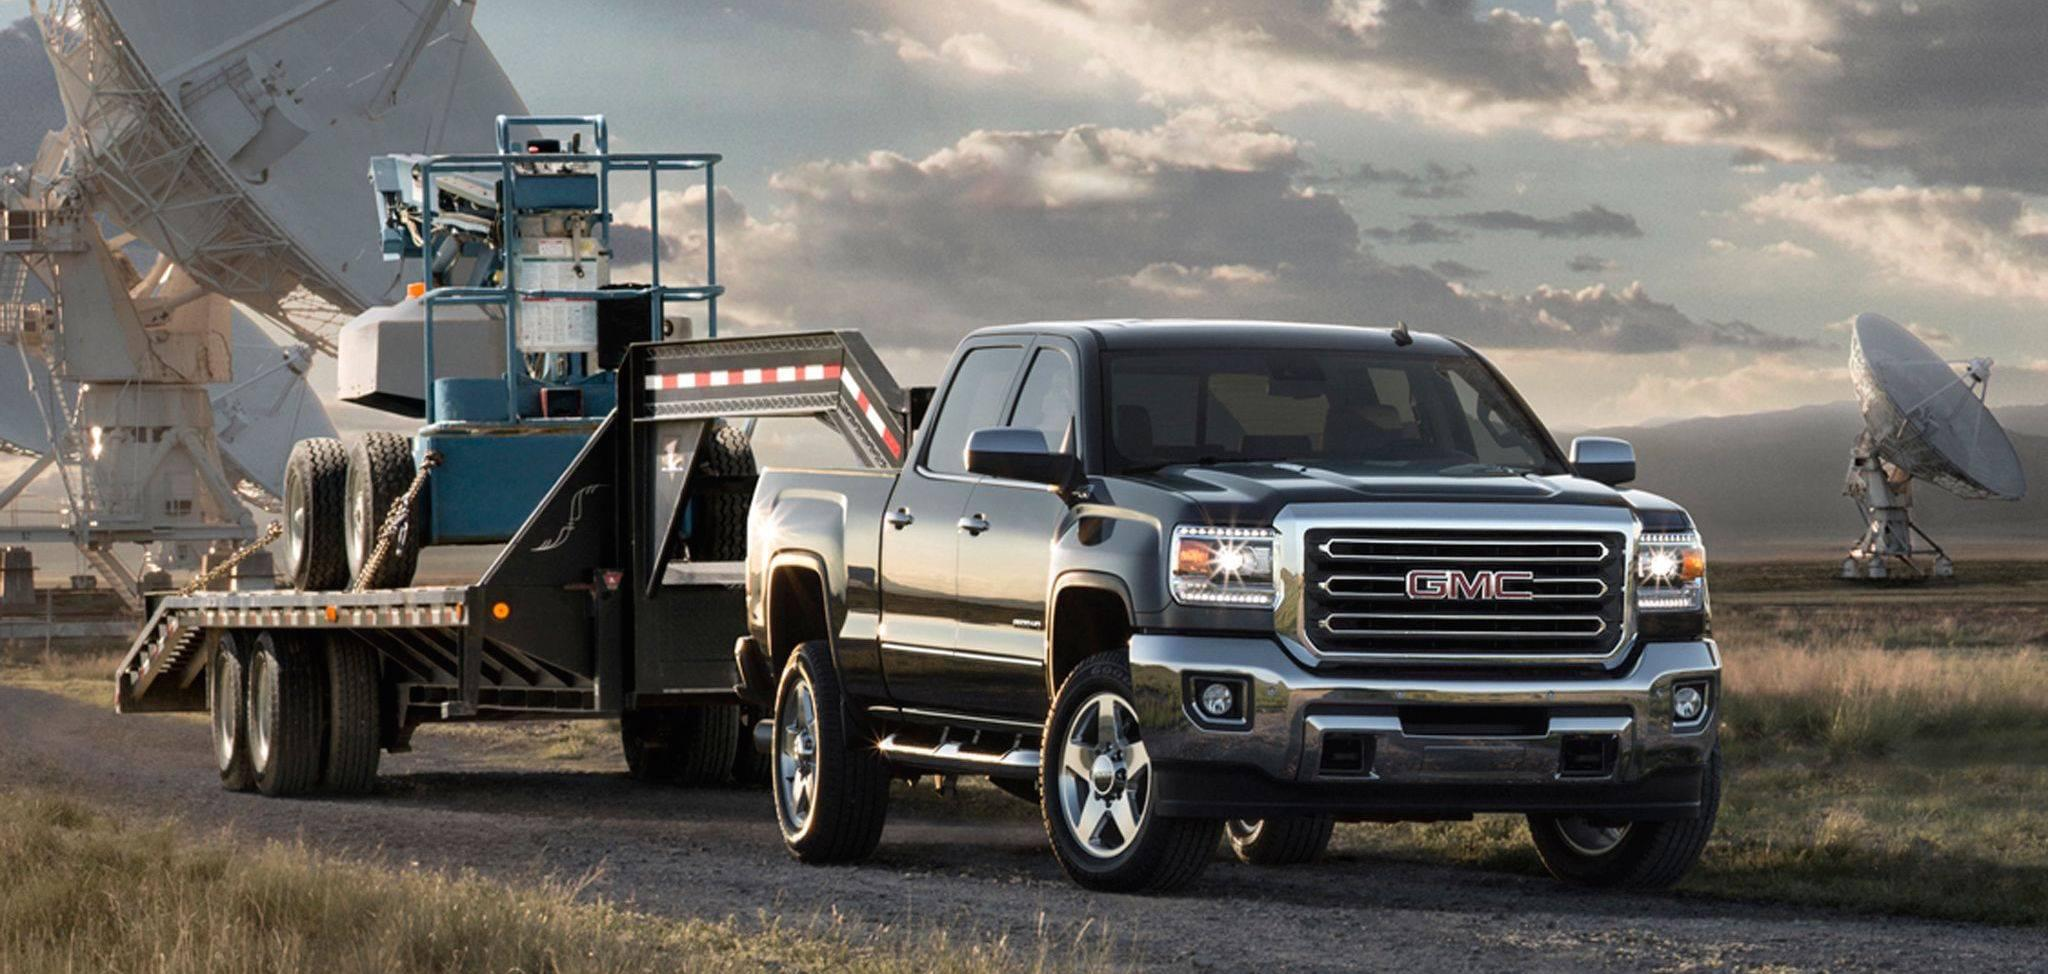 Black 2015 Used GMC Sierra 2500HD towing machinery in front of large satellites